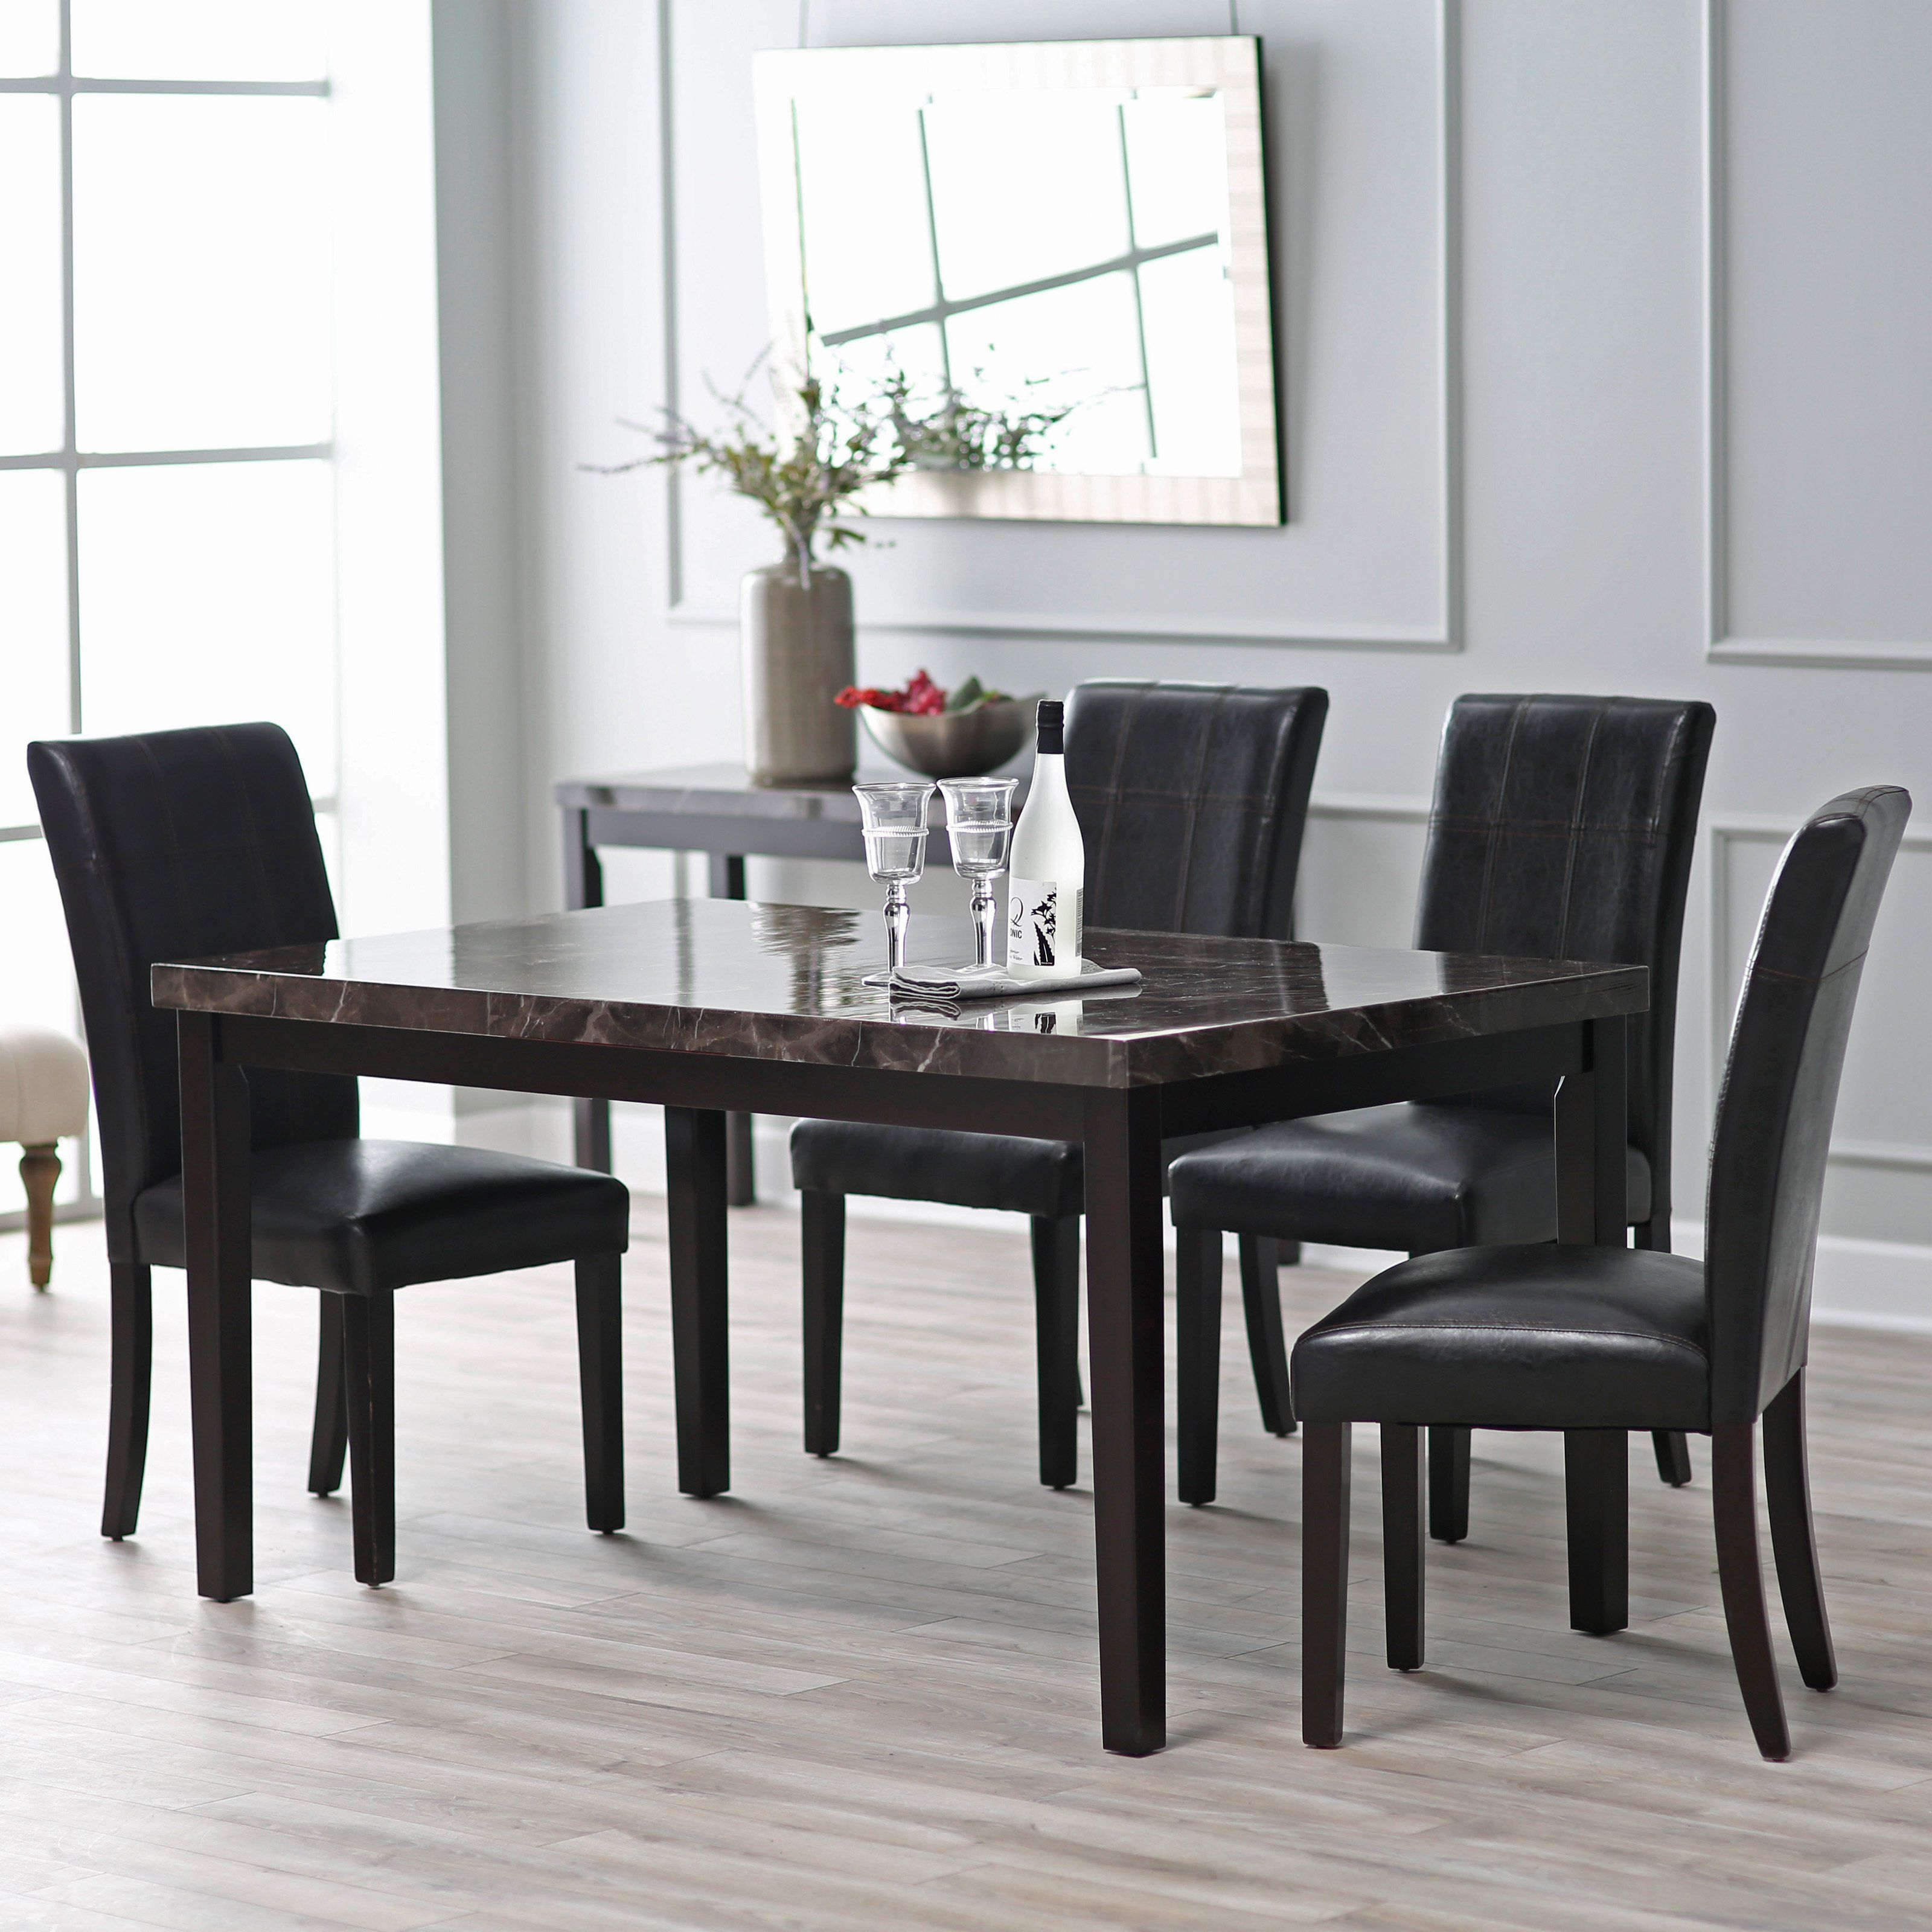 Milano Esszimmer Finley Home Milano 5 Piece Dining Table Set Furniture For House